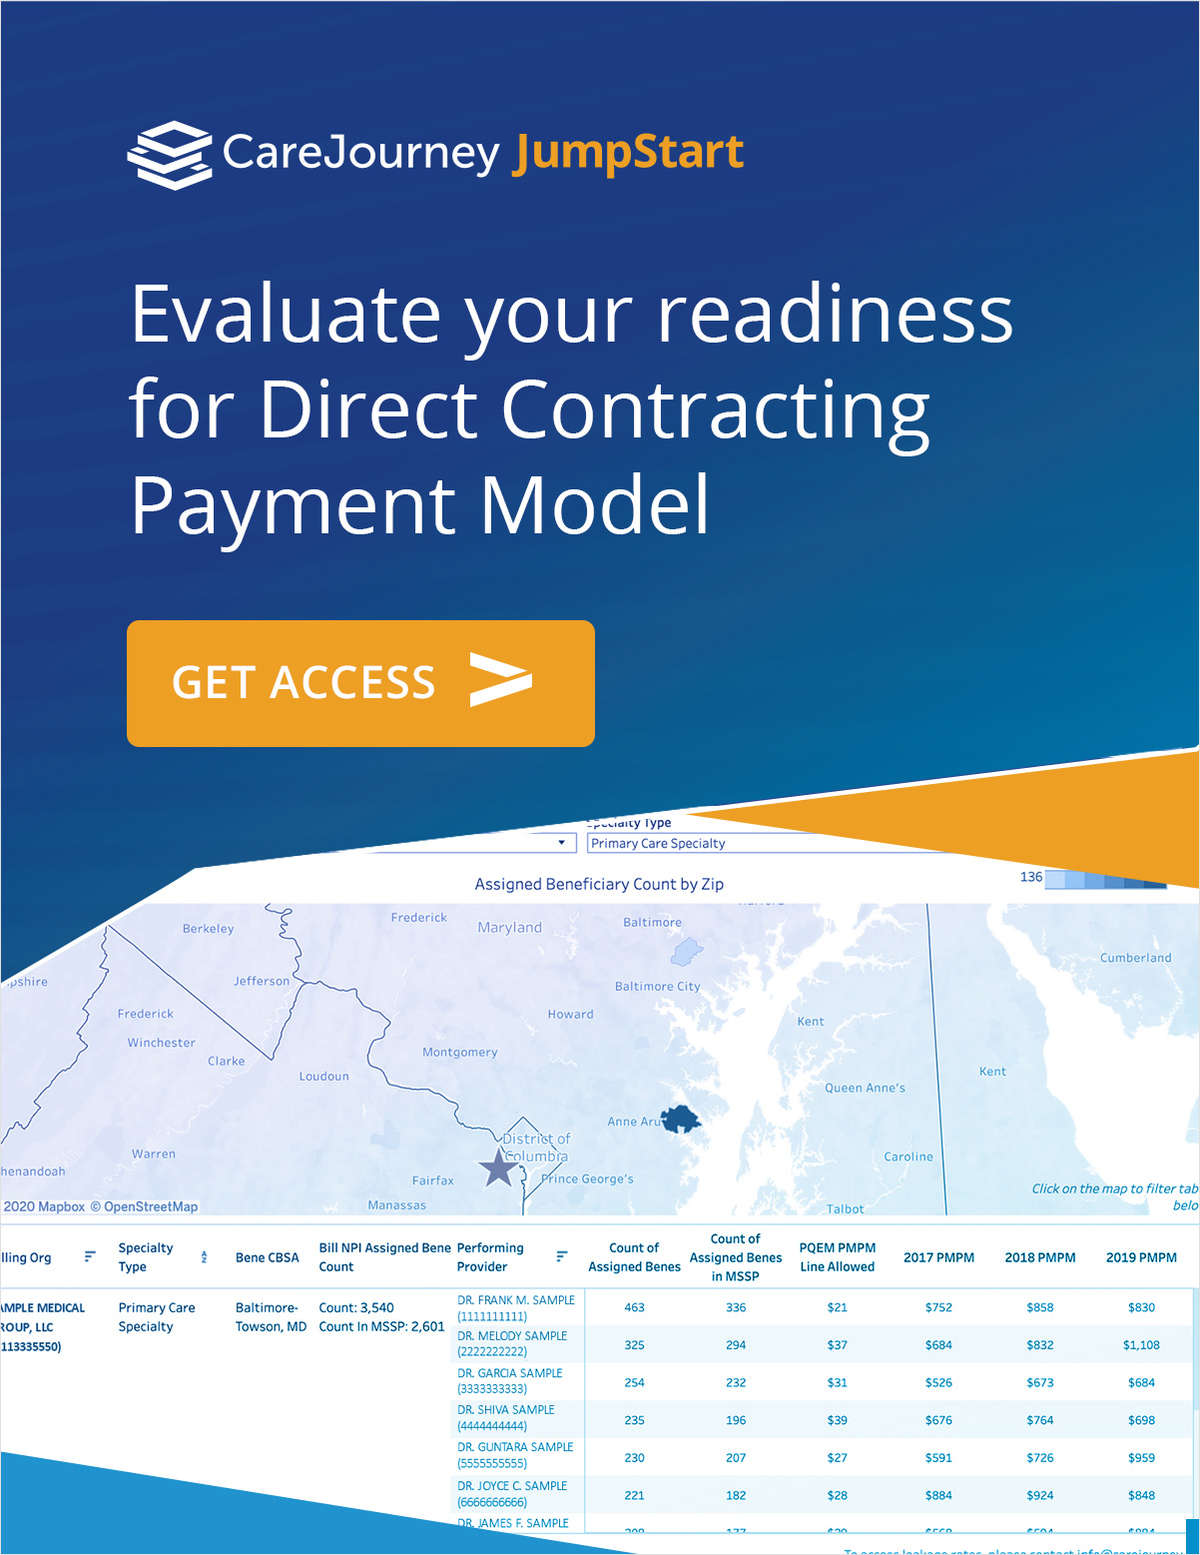 Evaluate your readiness for CMS's Direct Contracting Payment Model